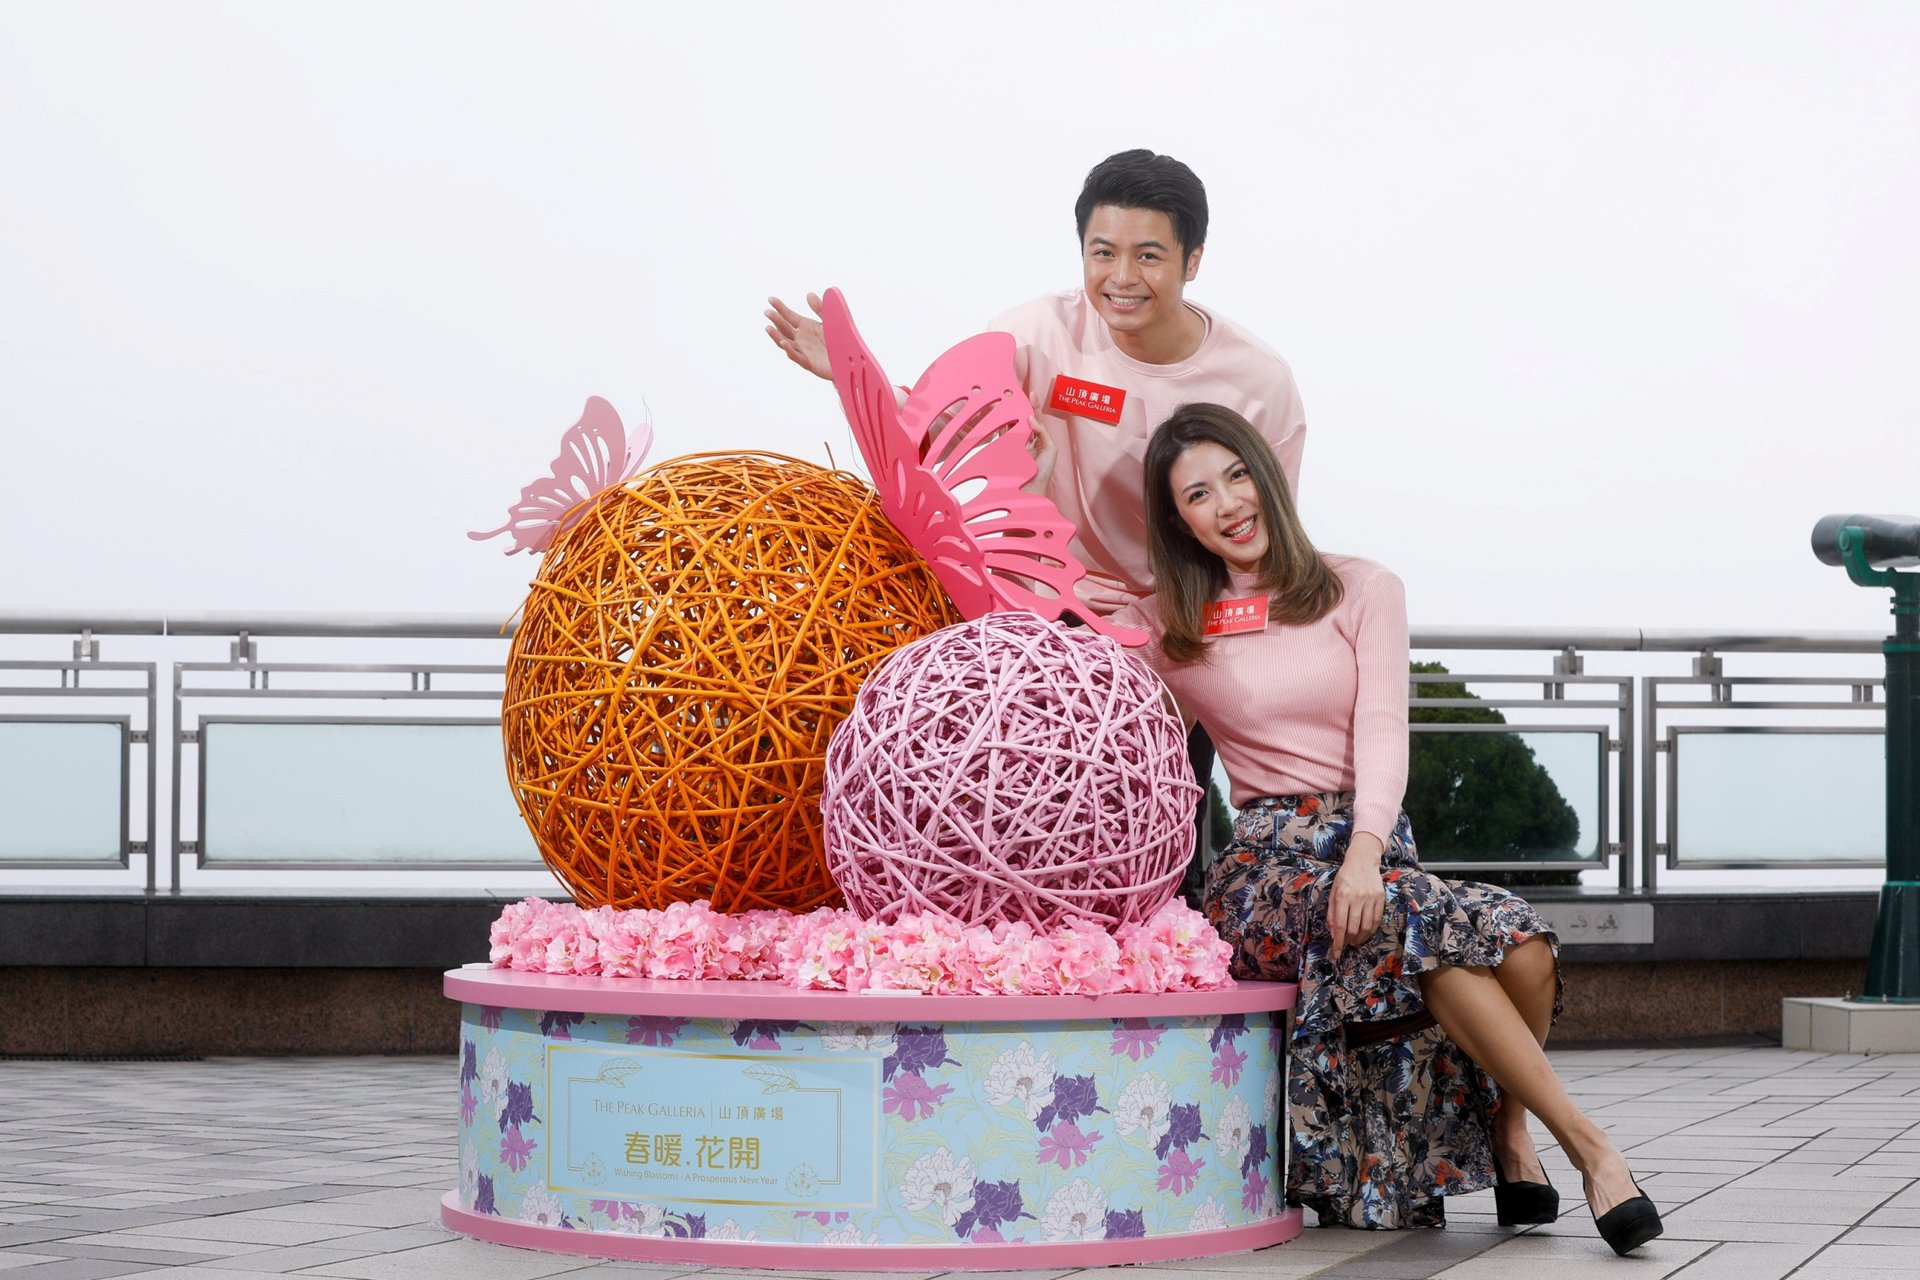 For a real feel of the exhilaration of Spring, guests can head to the Green Terrace at  The Peak Galleria and strike a pose alongside the outdoor butterfly bouquet installation while enjoying the breathtaking vistas of Pok Fu Lam Reservoir.